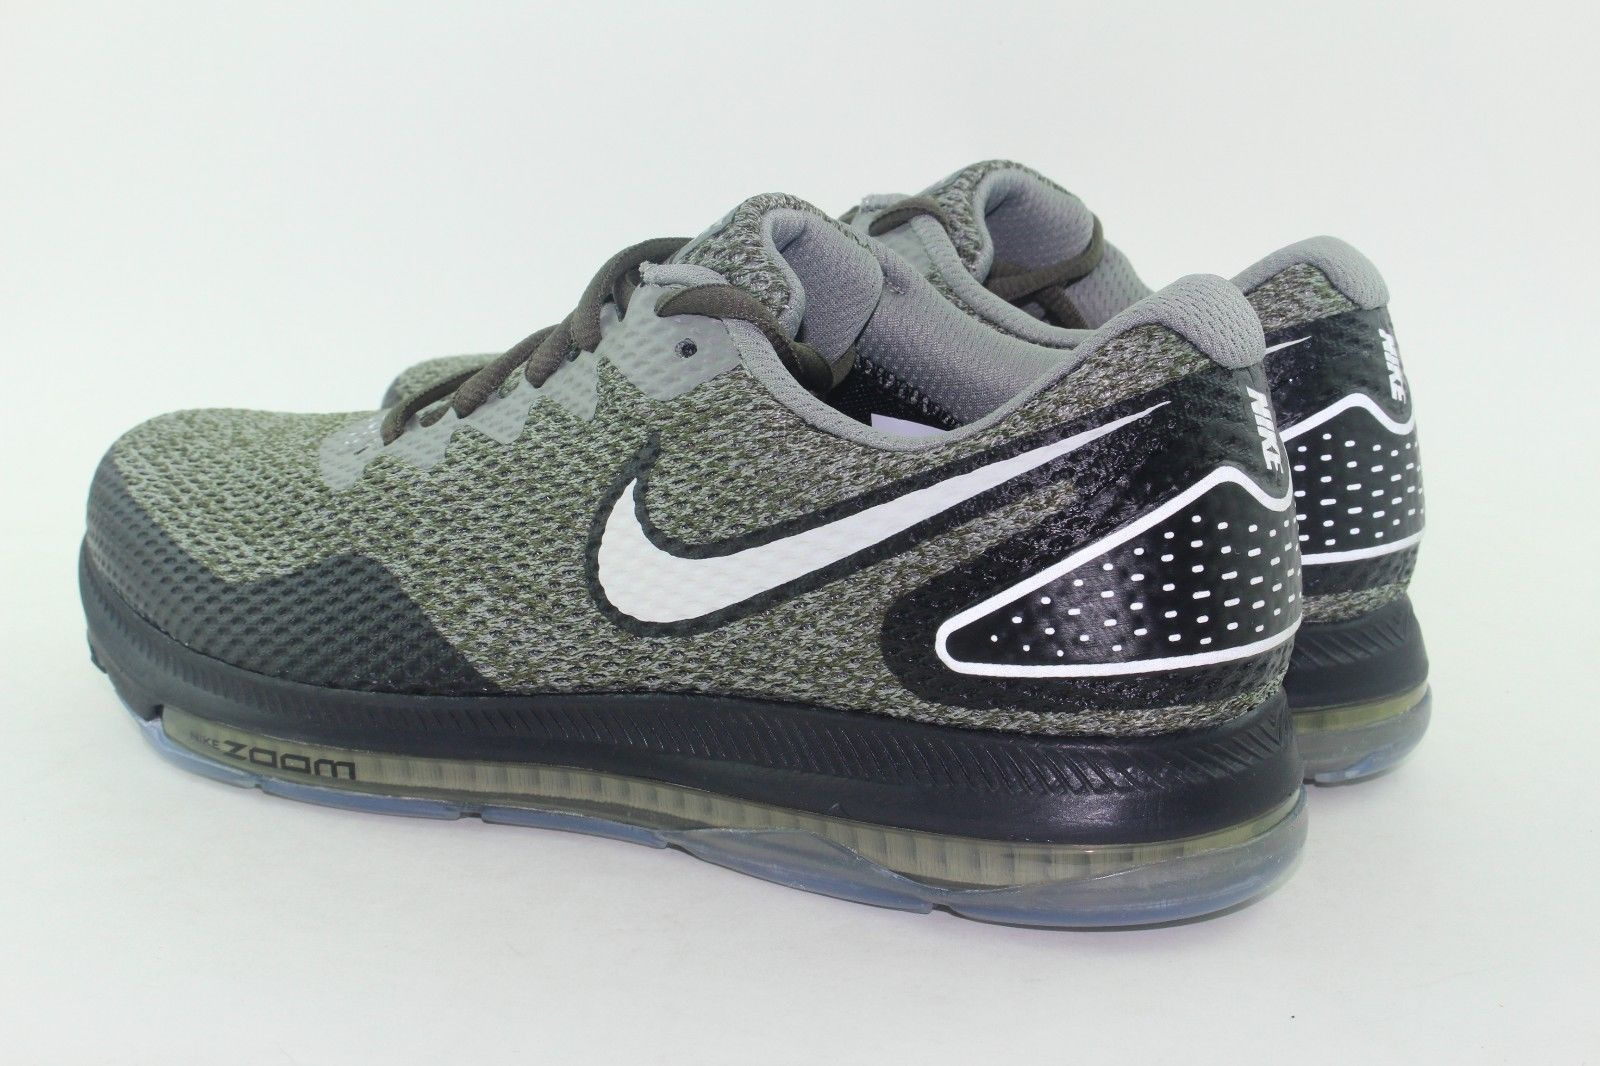 release date 1f515 76d31 NIKE ZOOM ALL OUT LOW 2 MEN SIZE 8.5 KHAKI COMFORT RUNNING